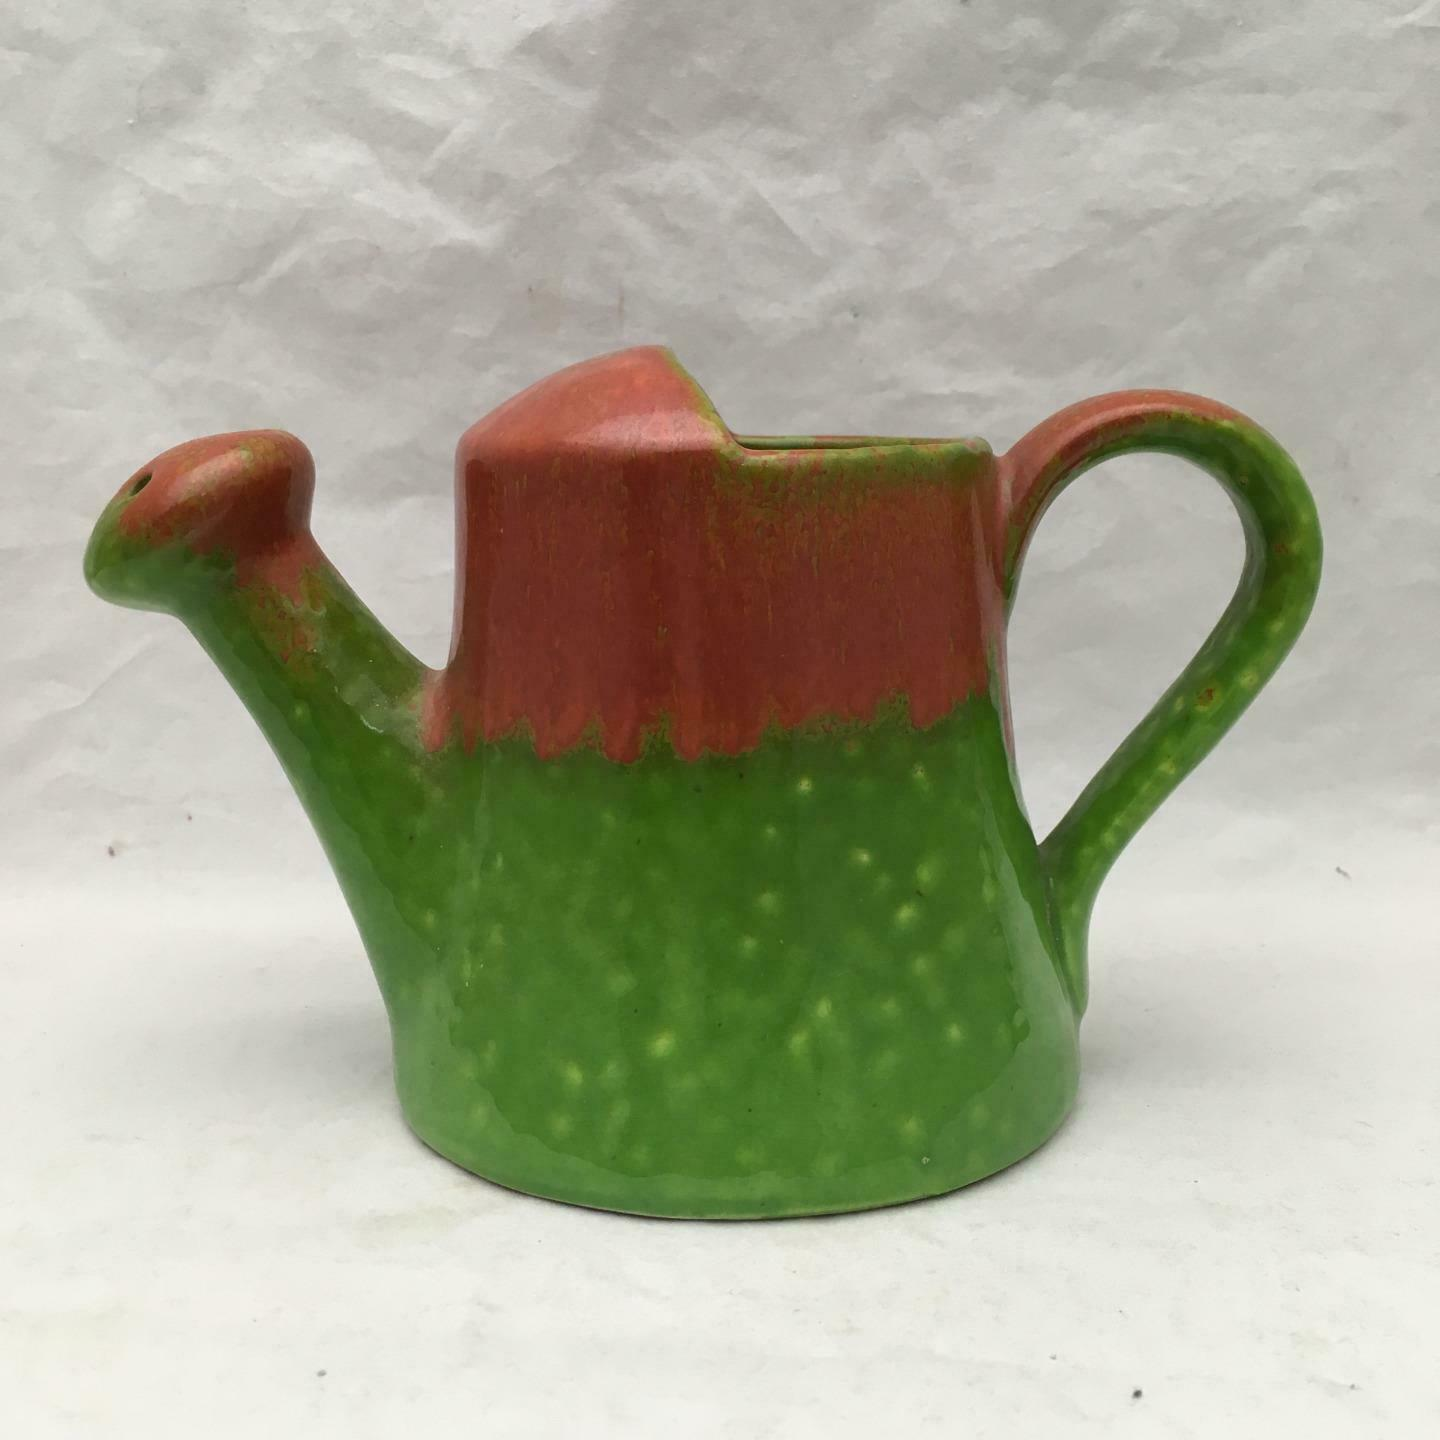 Vintage Pottery Watering Can Green & Brown w Foil Label ACTIVE Stamped ITALY 5